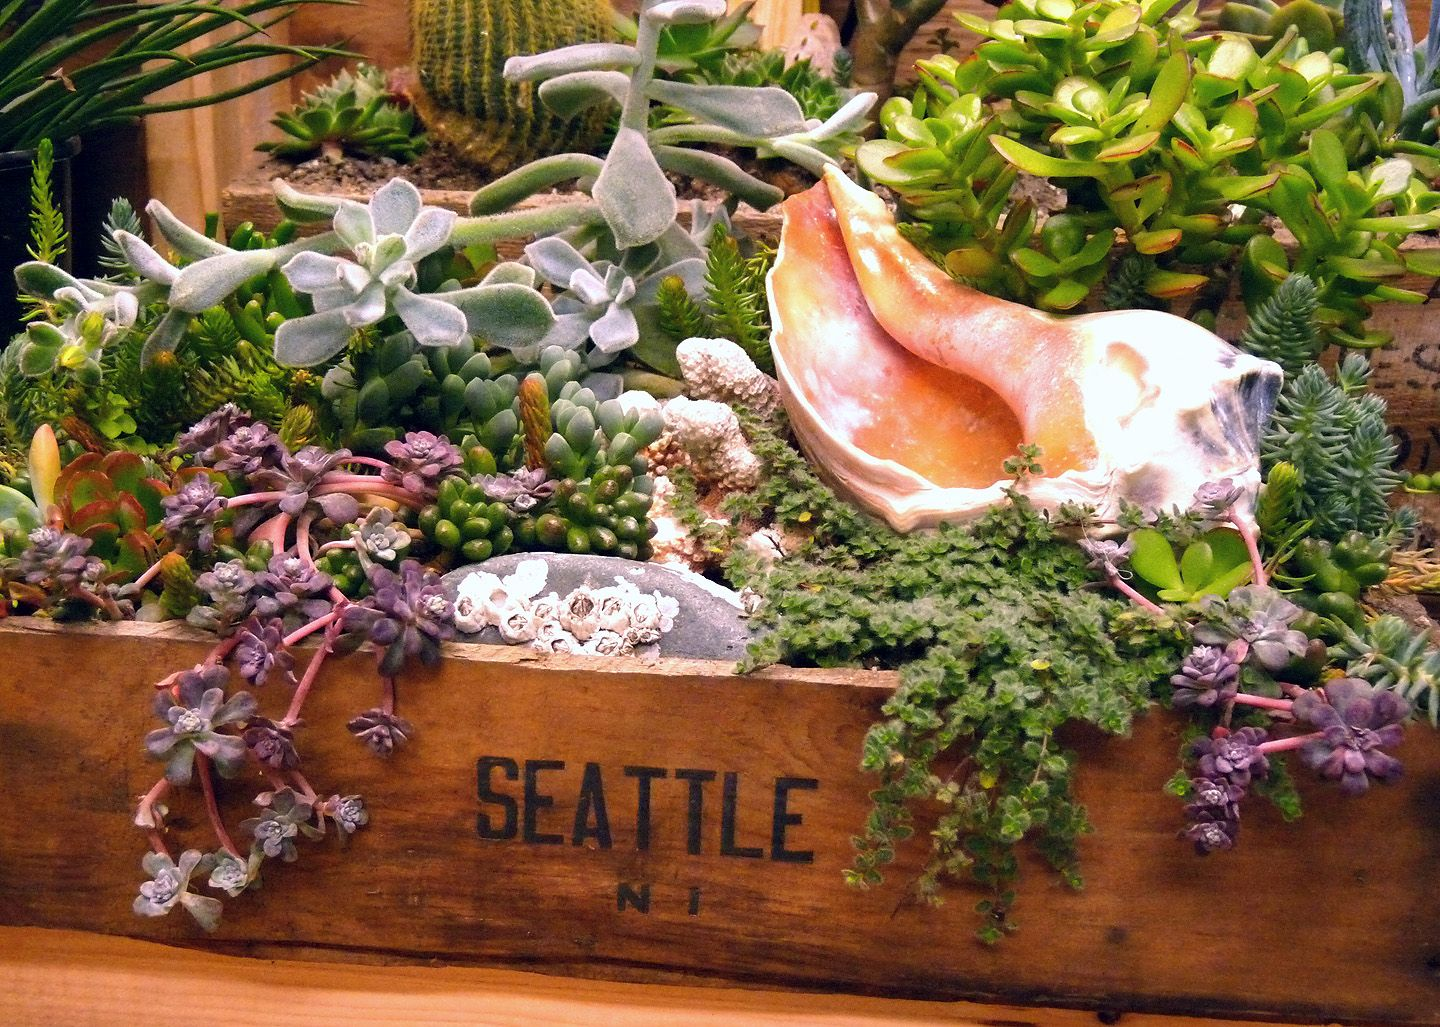 Google Image Result for http://www.gardenshowblog.com/wp-content/uploads/2011/02/Containers-Malcolm-PS.jpg